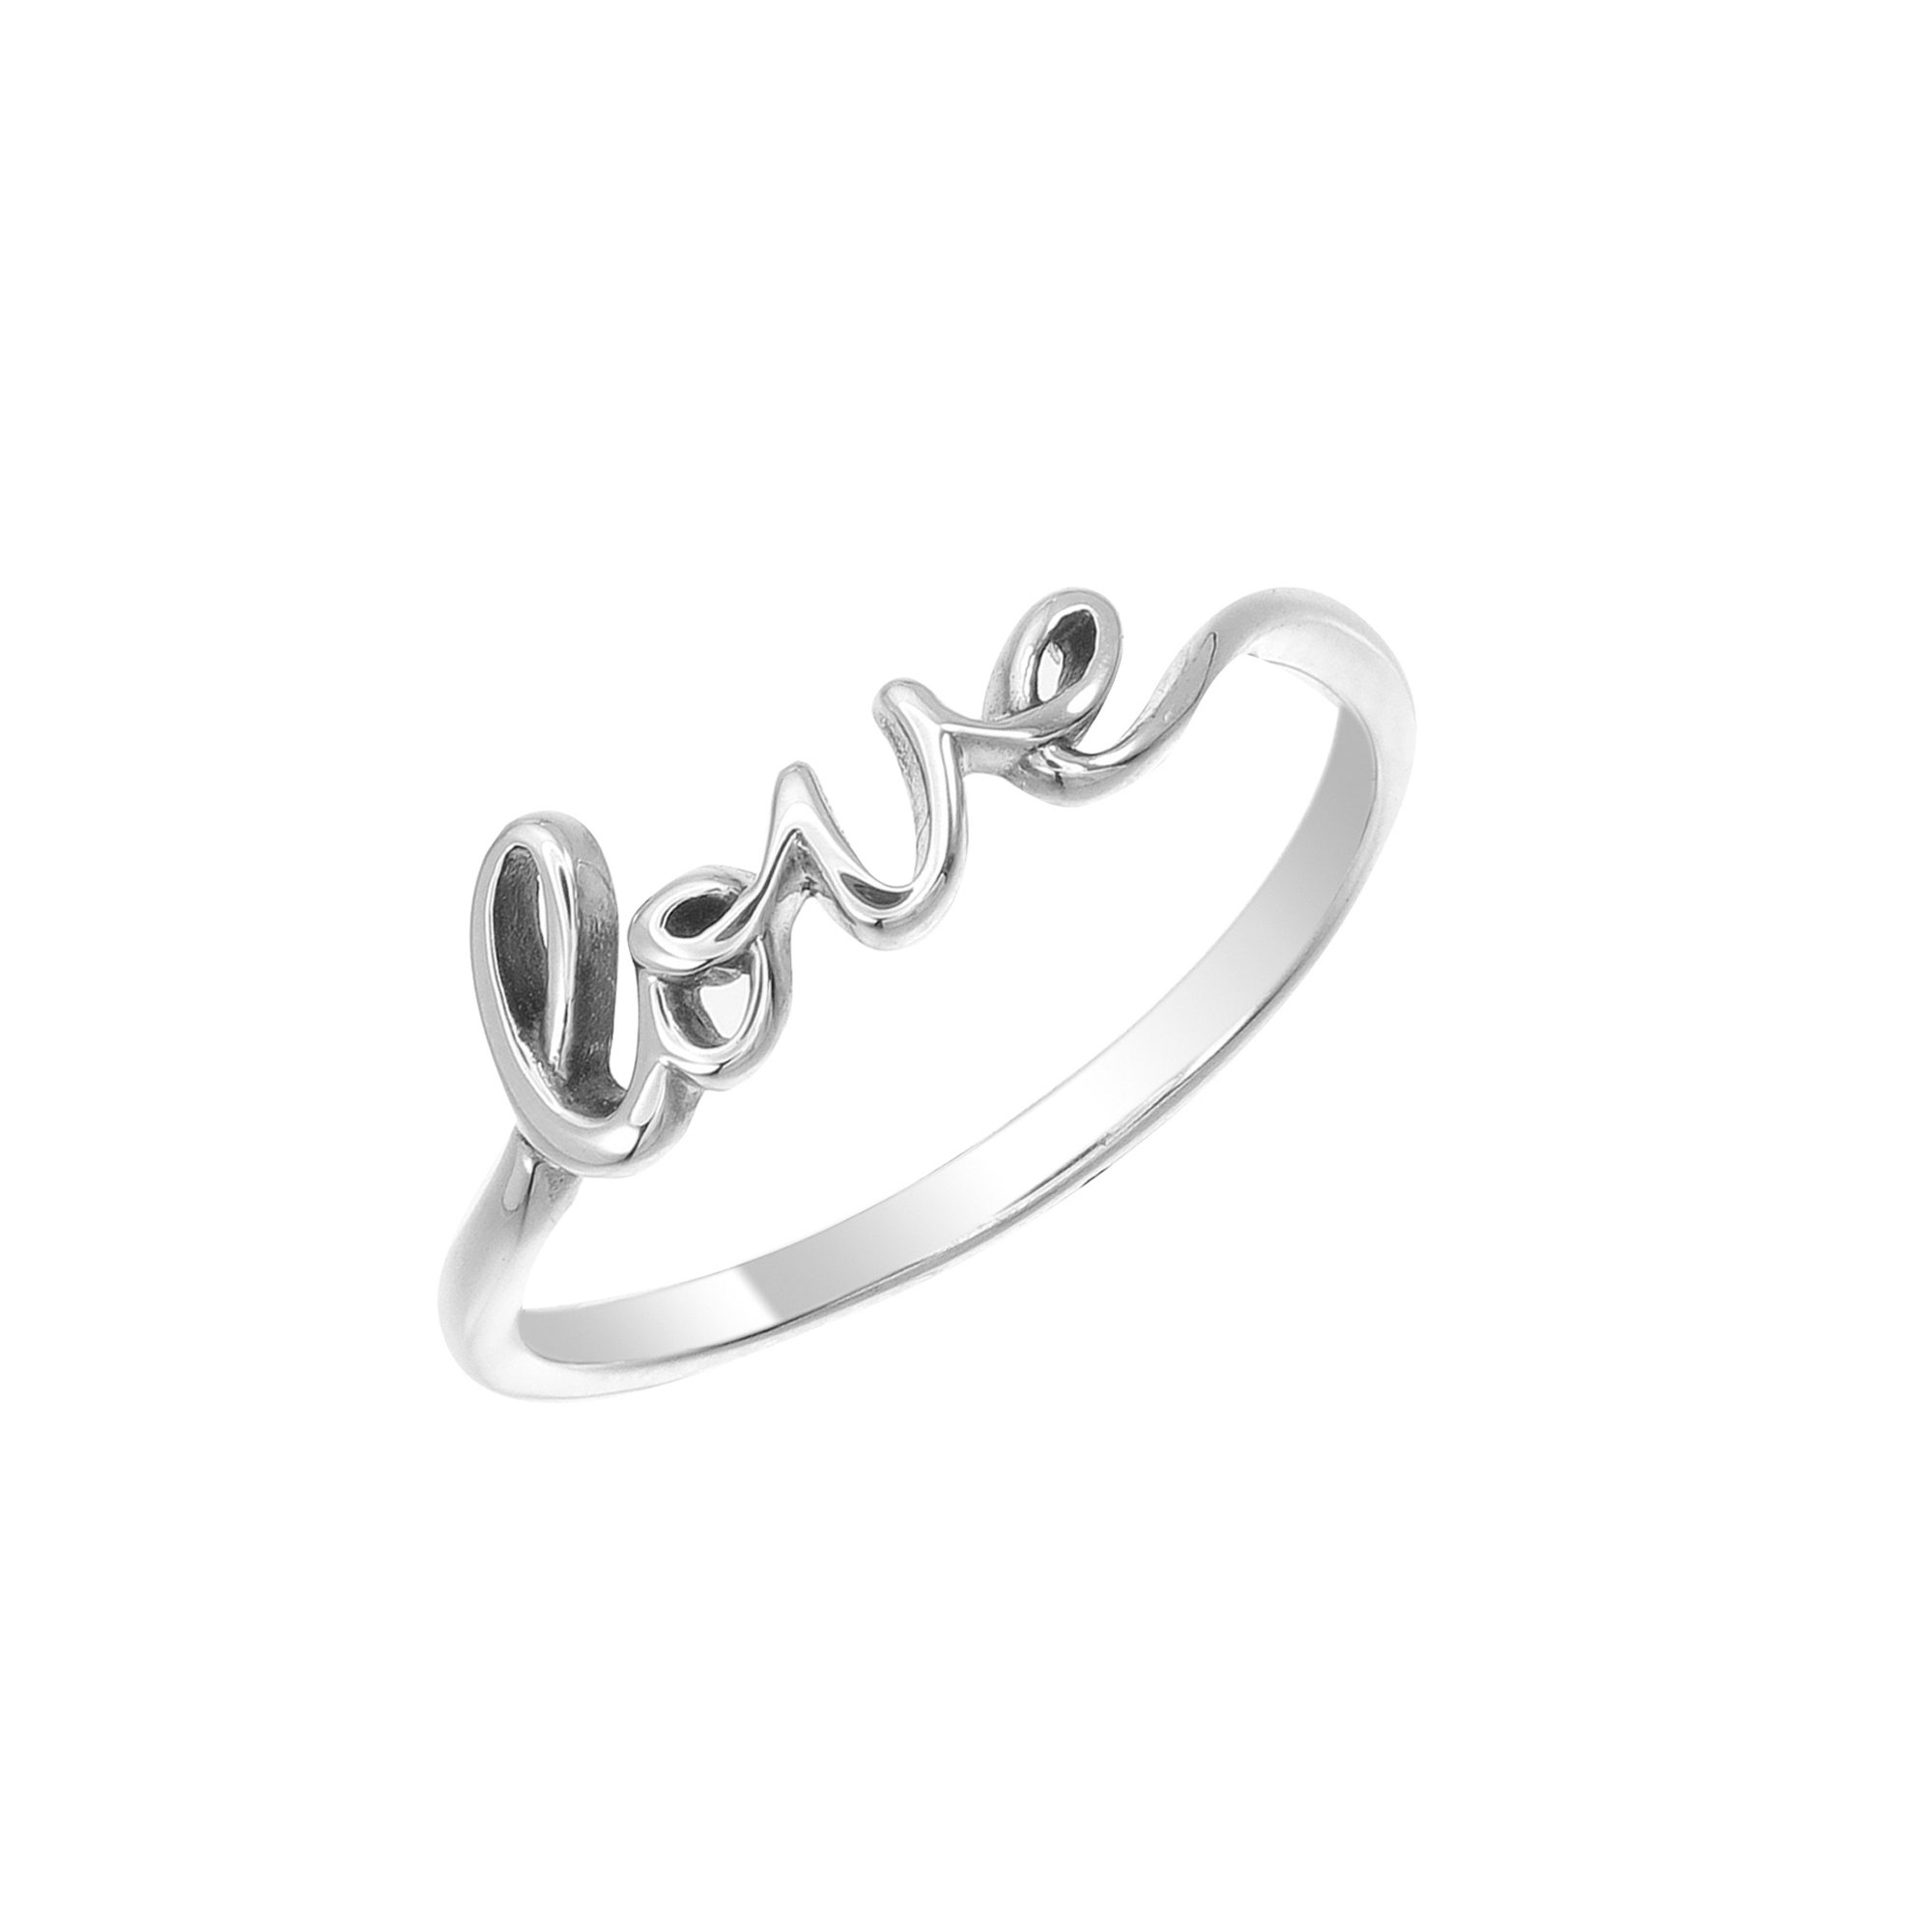 Boma Sterling Silver Love Script Ring, Size 7